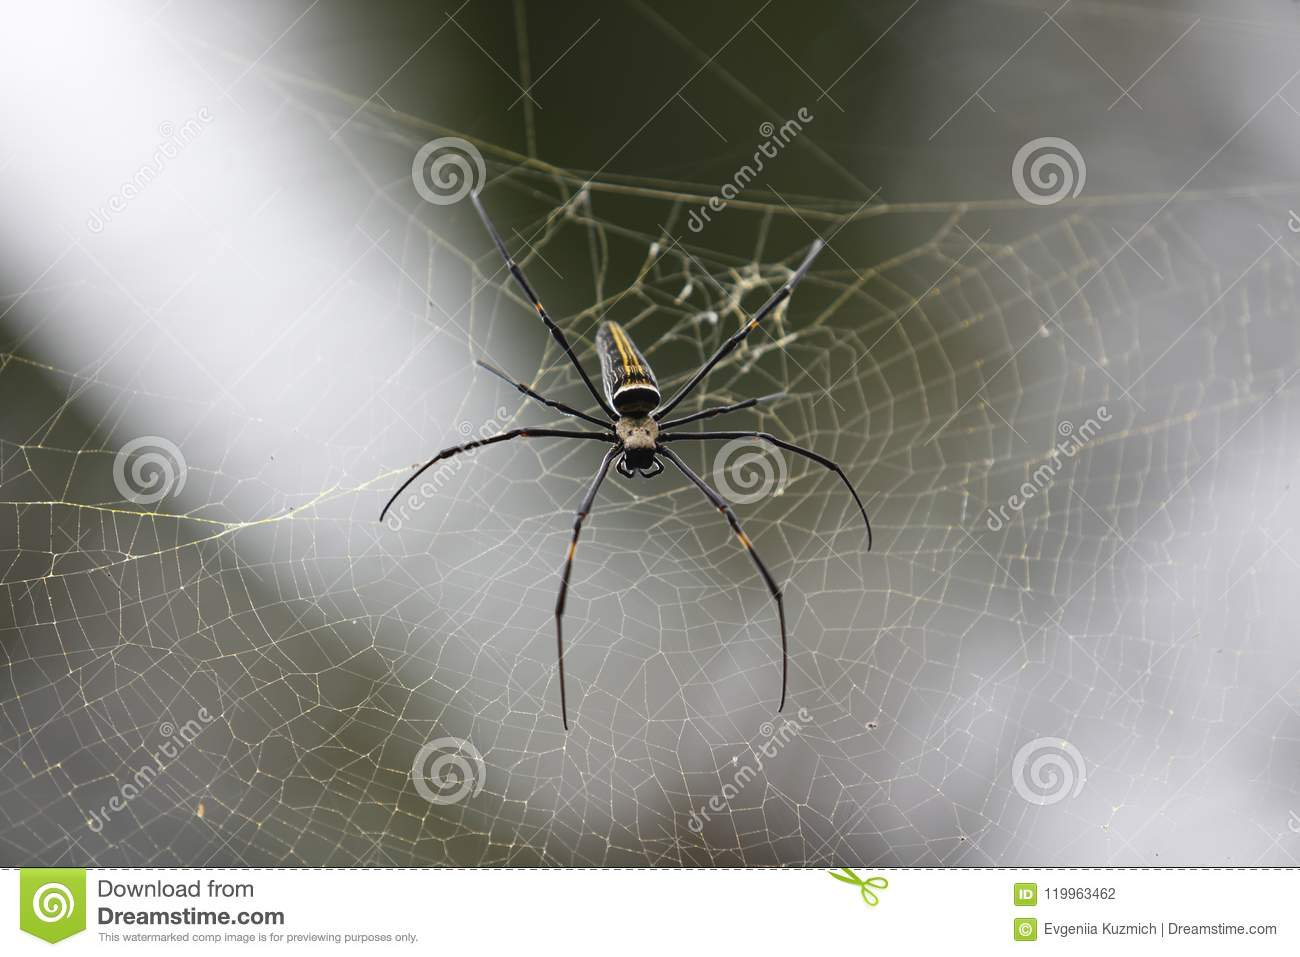 Spider and spider web close-up in natural environment